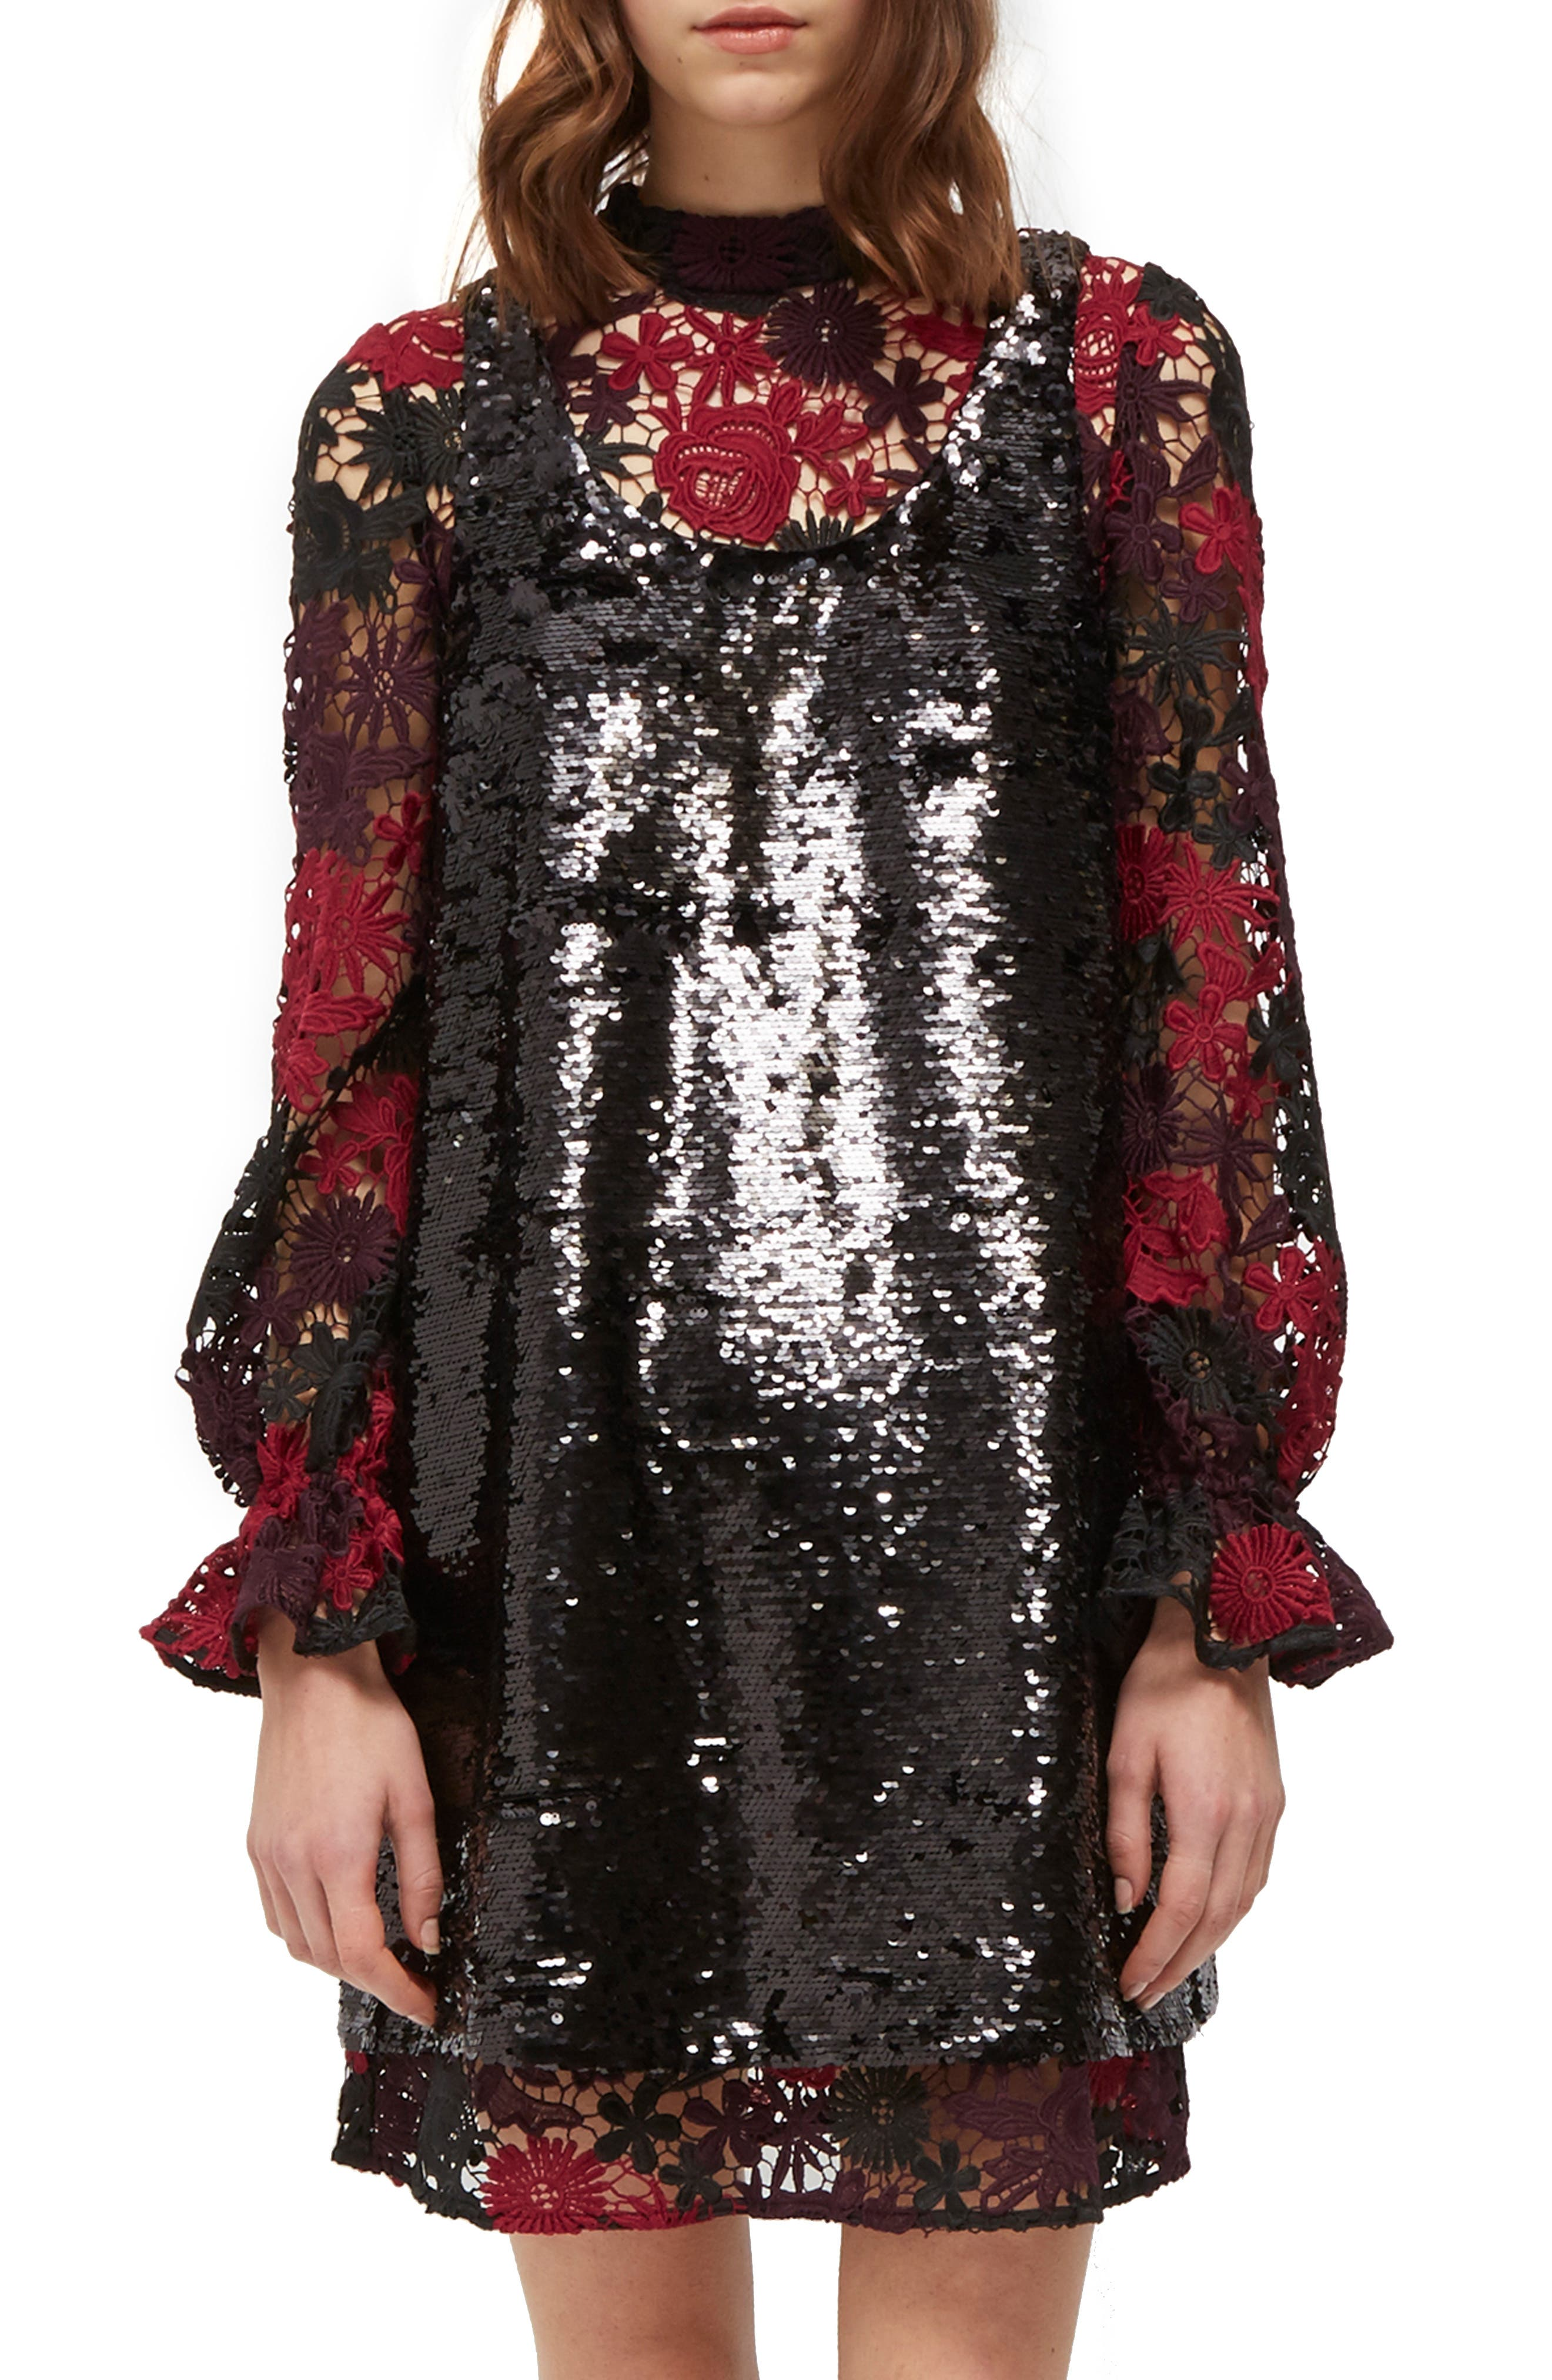 French Connection Cynthia Sequin & Lace Shift Dress, Black